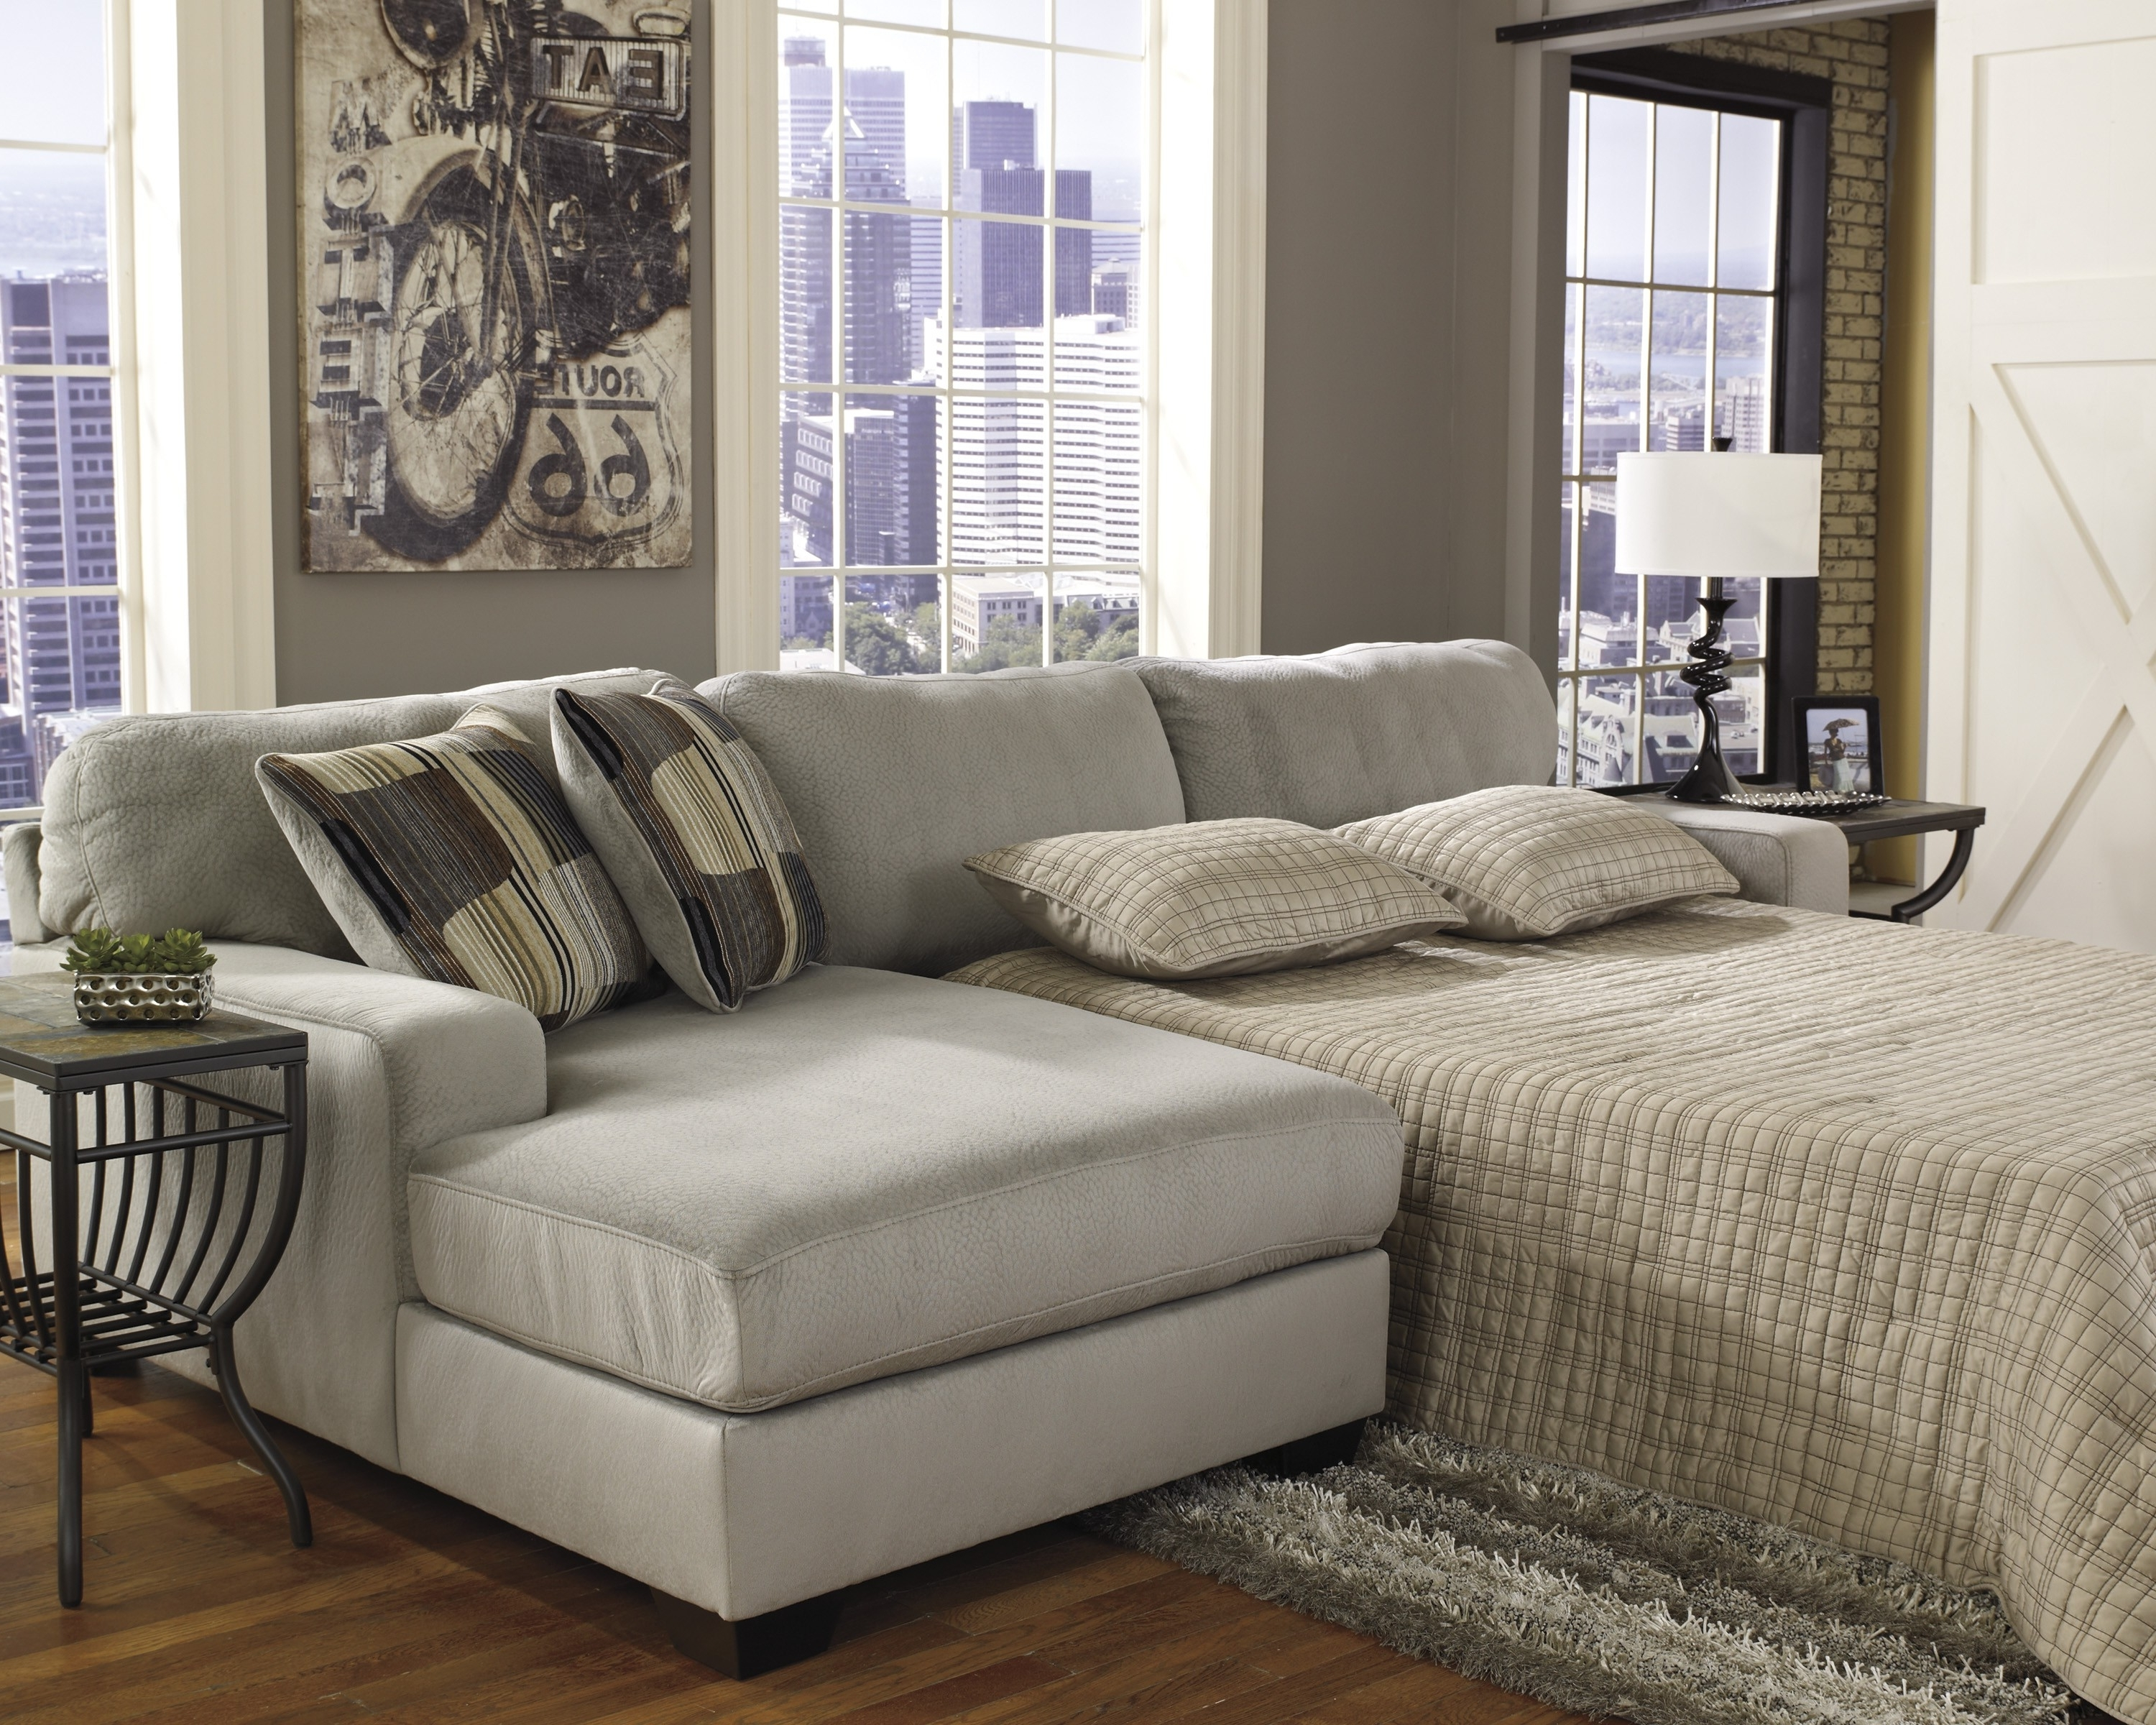 Chaise Queen Sleeper Sectional Sofa – Cleanupflorida With Regard To Newest Sleeper Sectional Sofas With Chaise (View 2 of 15)